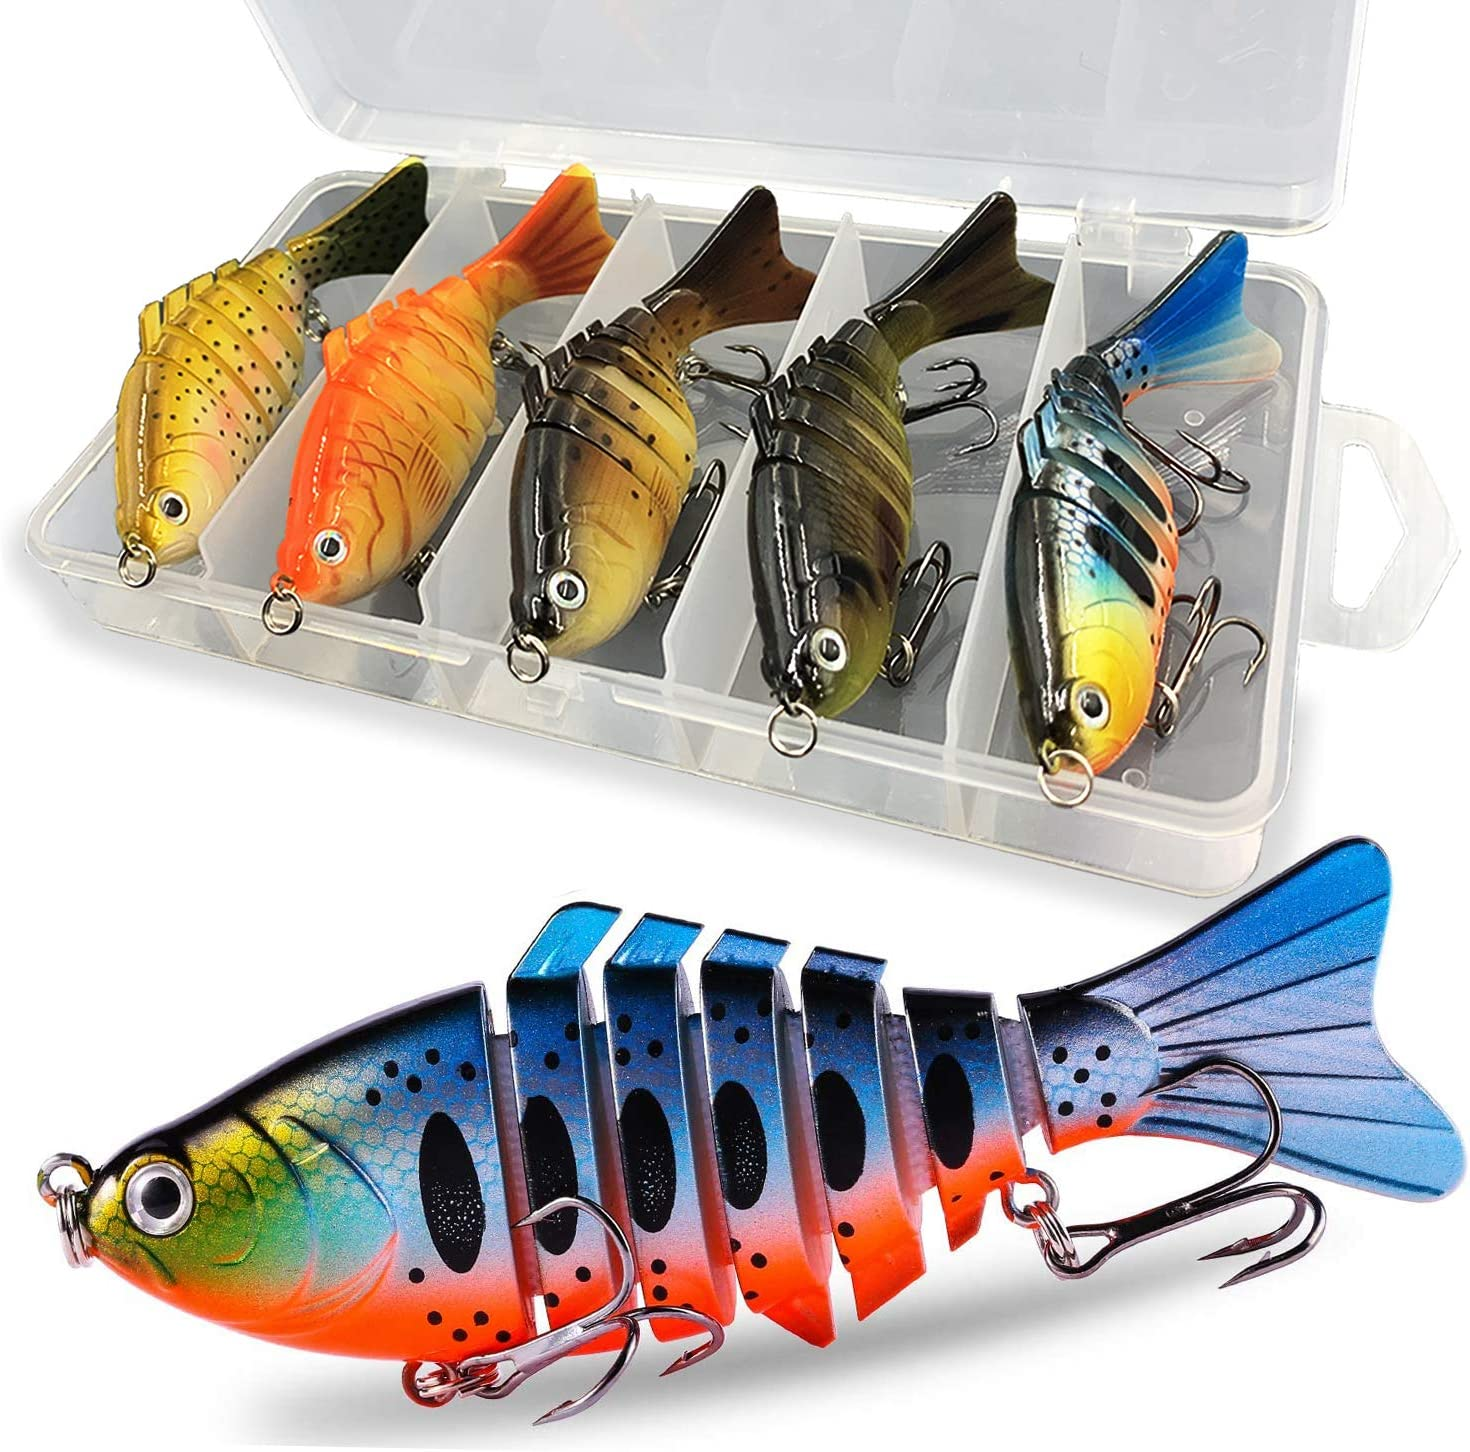 Liraip Fishing Lures for Bass Multi Swi Jointed Over item handling ☆ Segmented Trout Quantity limited